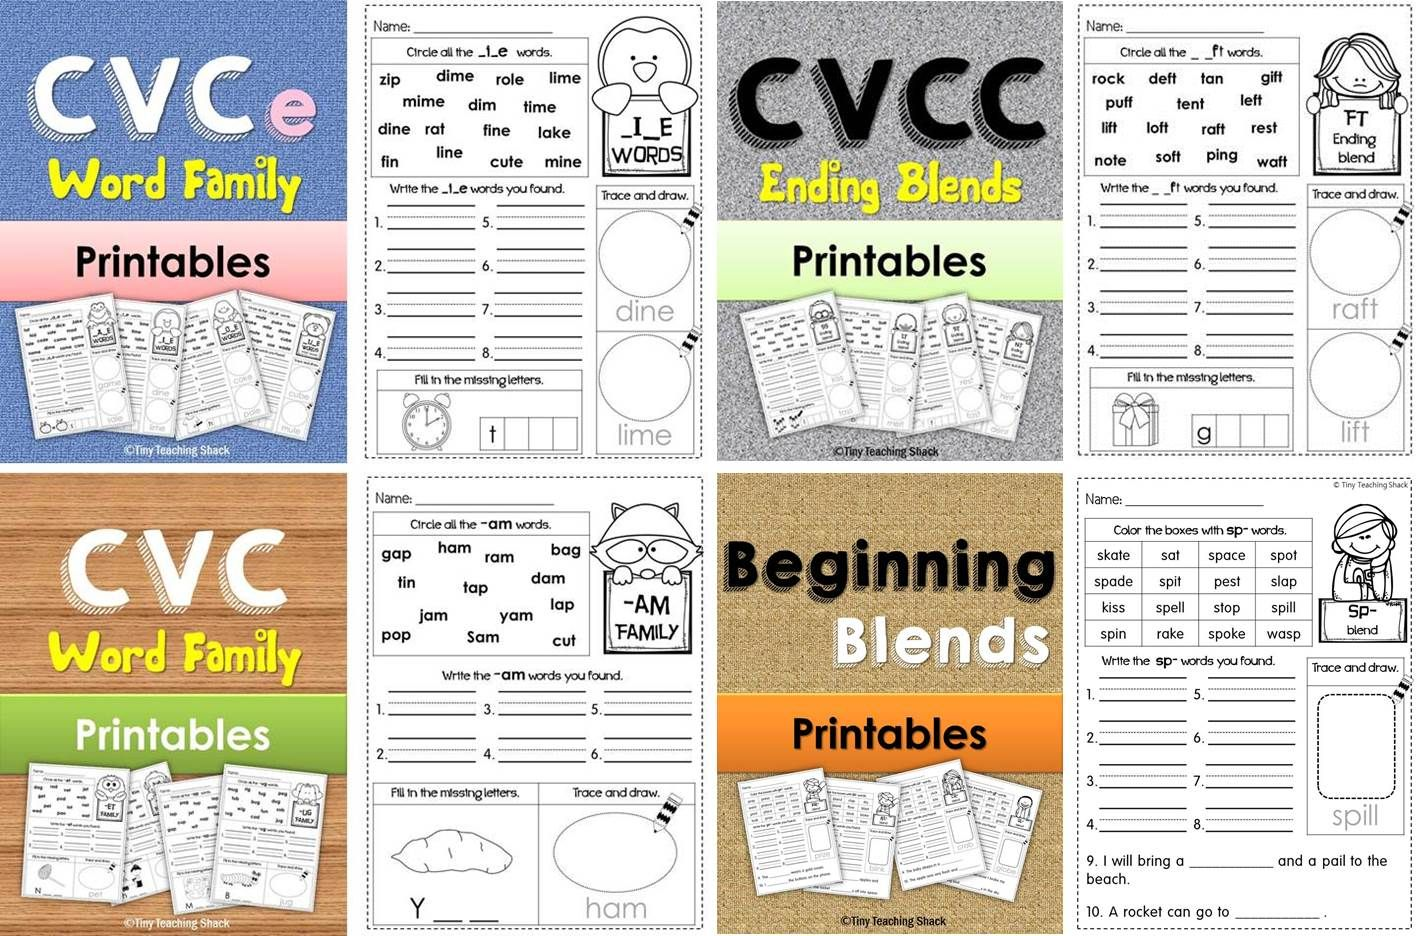 Phonics Worksheets Cvc Cvce Cvcc Ending Blend Beginning